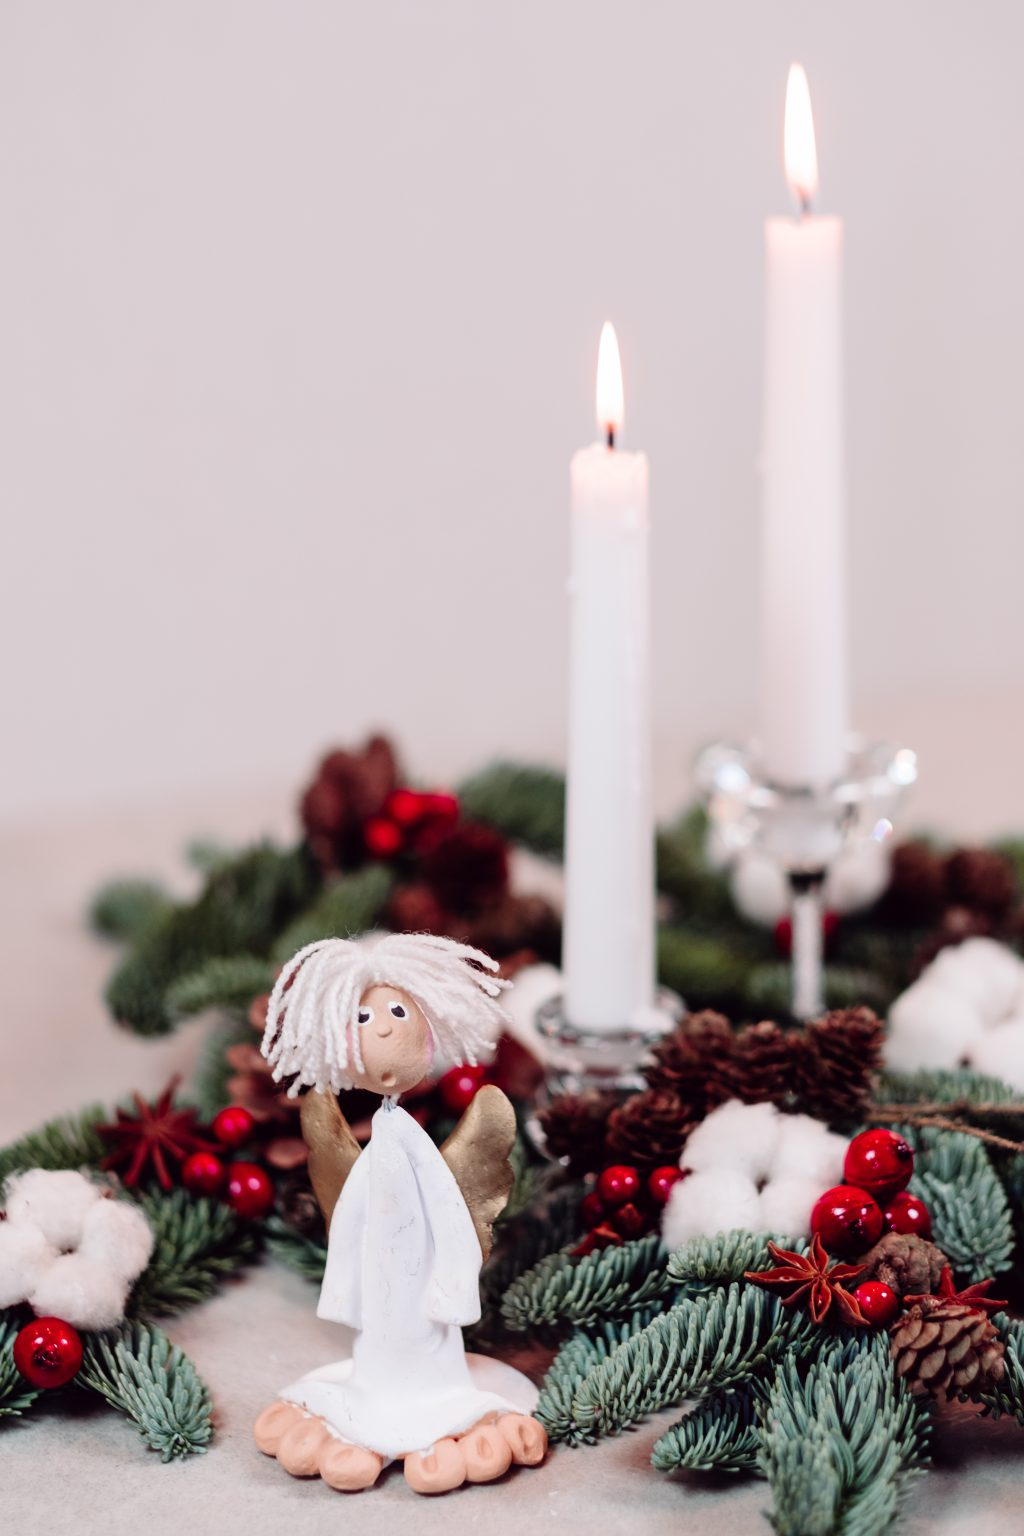 Christmas spruce decoration with candles and an angel - free stock photo